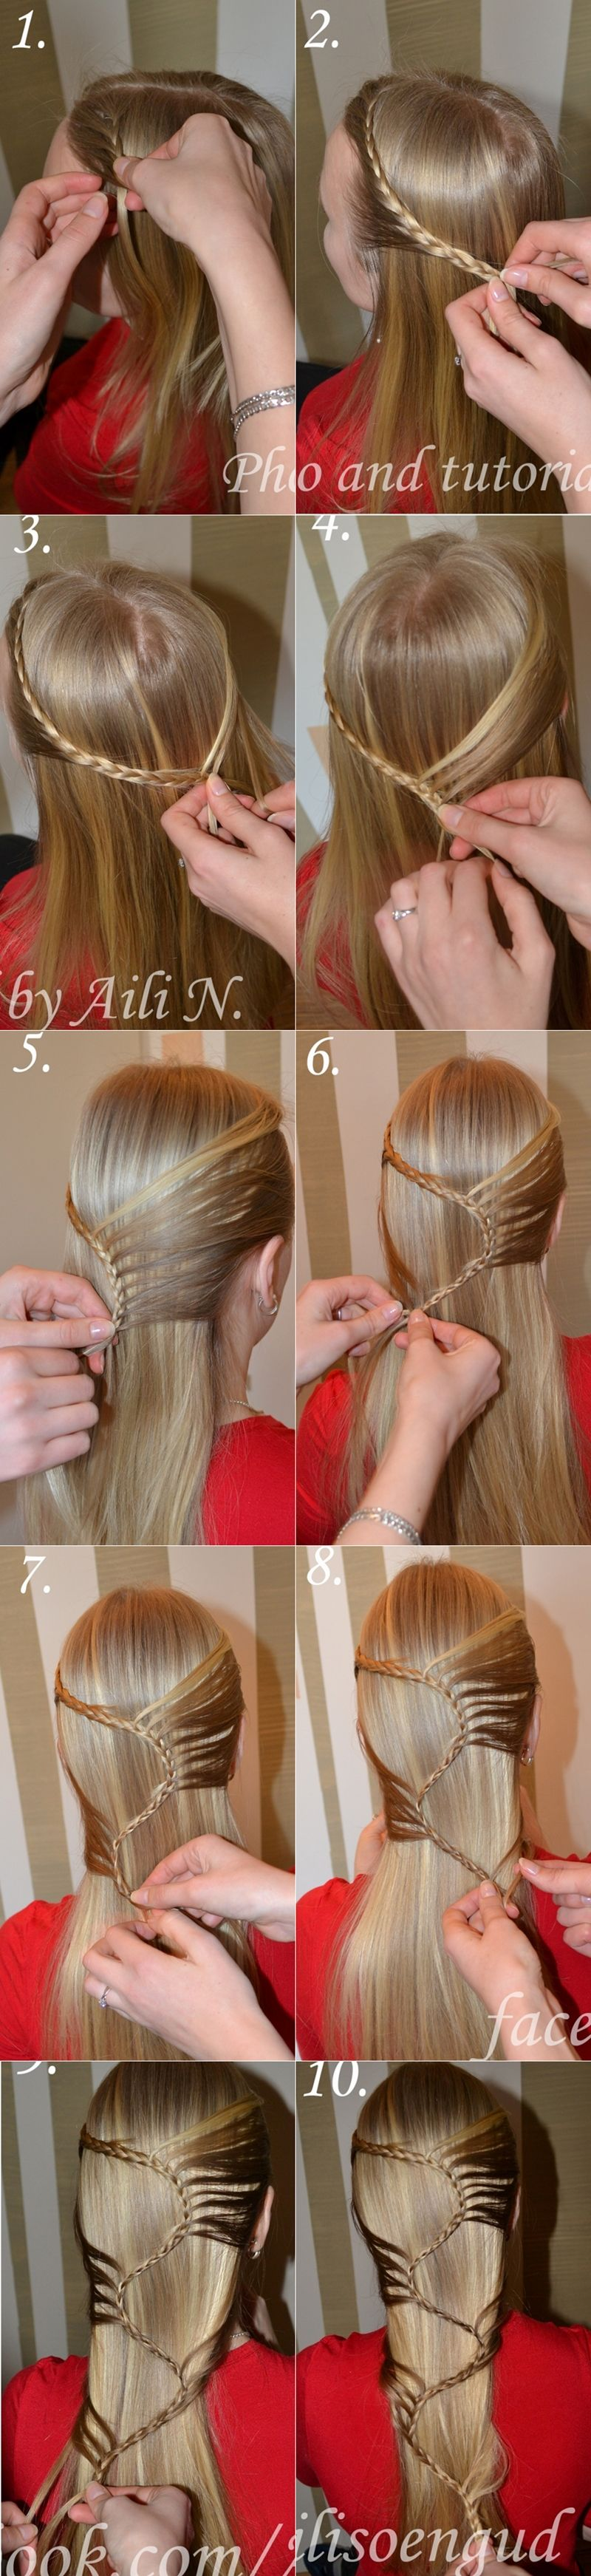 Diy stylish long hair hairstyle tutorials facebook and hair style